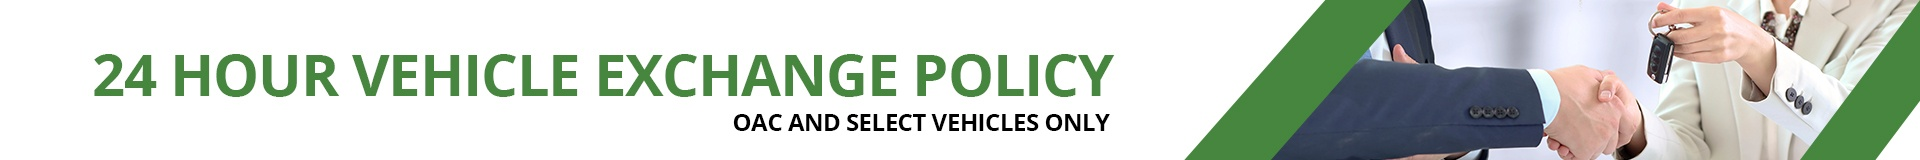 24 hour Vehicle Exchange Policy